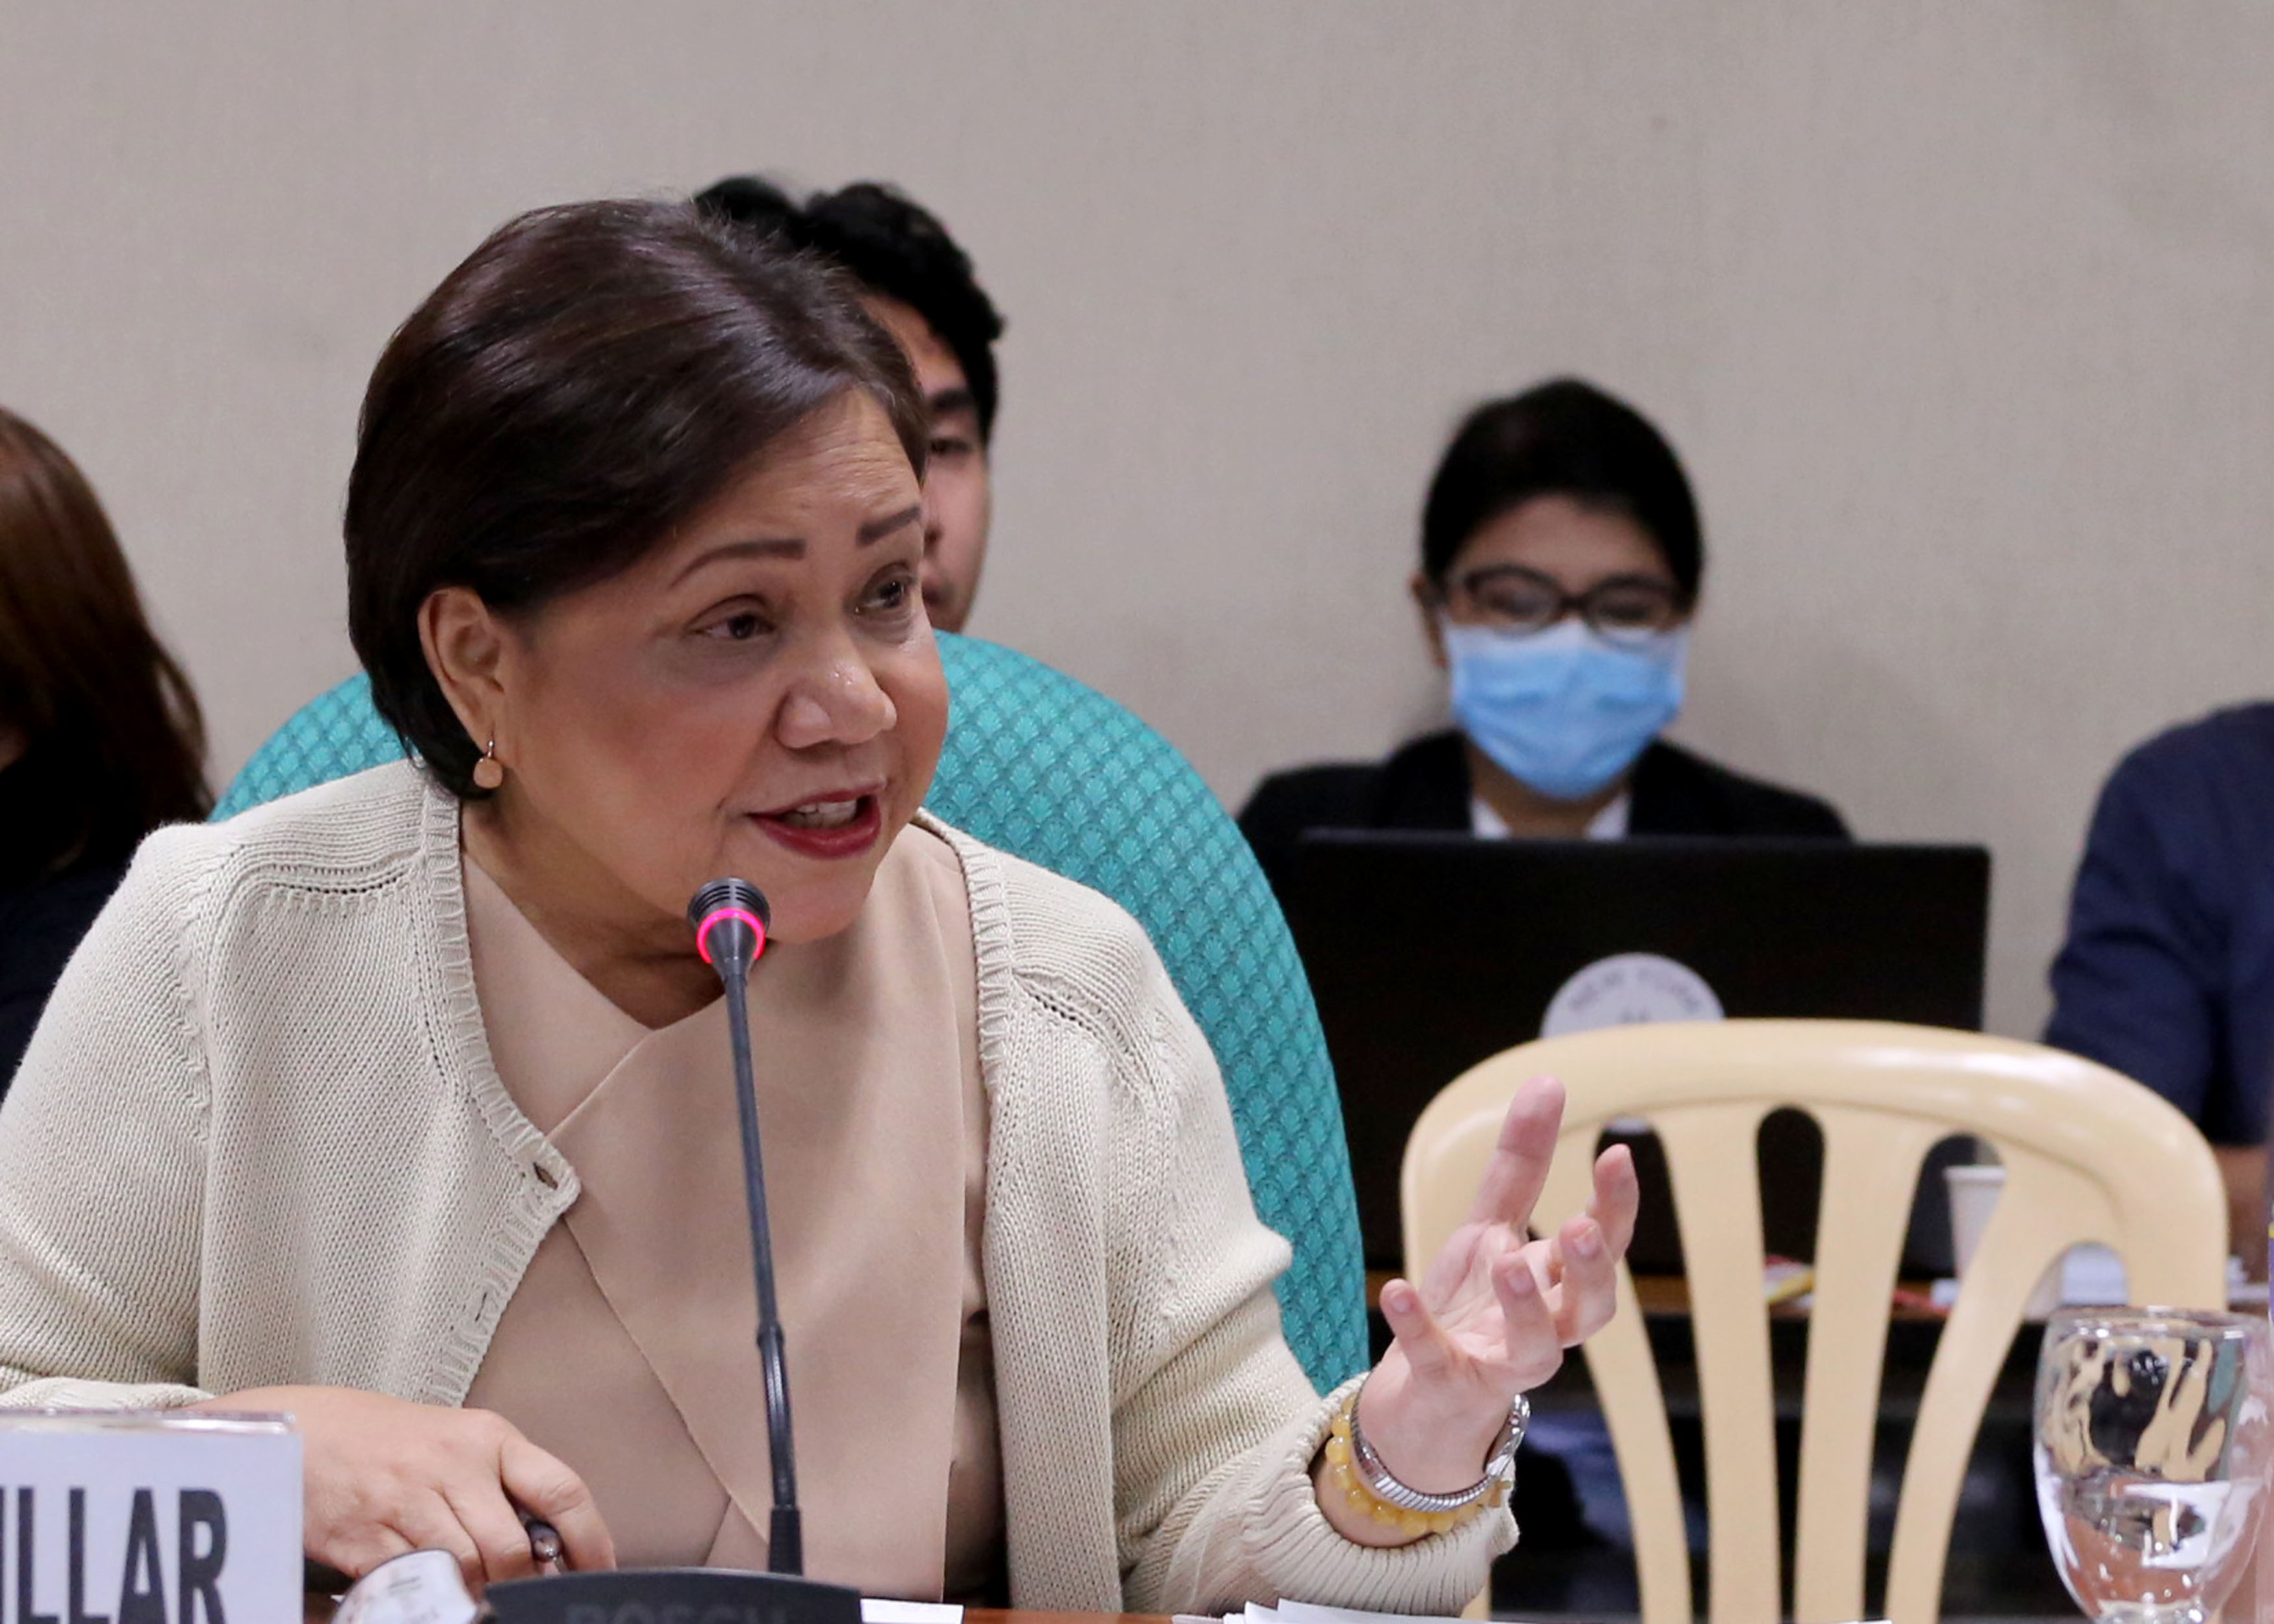 GRANNY OR GODMOTHER? Senators tease their colleague Senator Cynthia Villar as they called her 'grandmother Earth,' which was later corrected to 'godmother Earth.' File photo